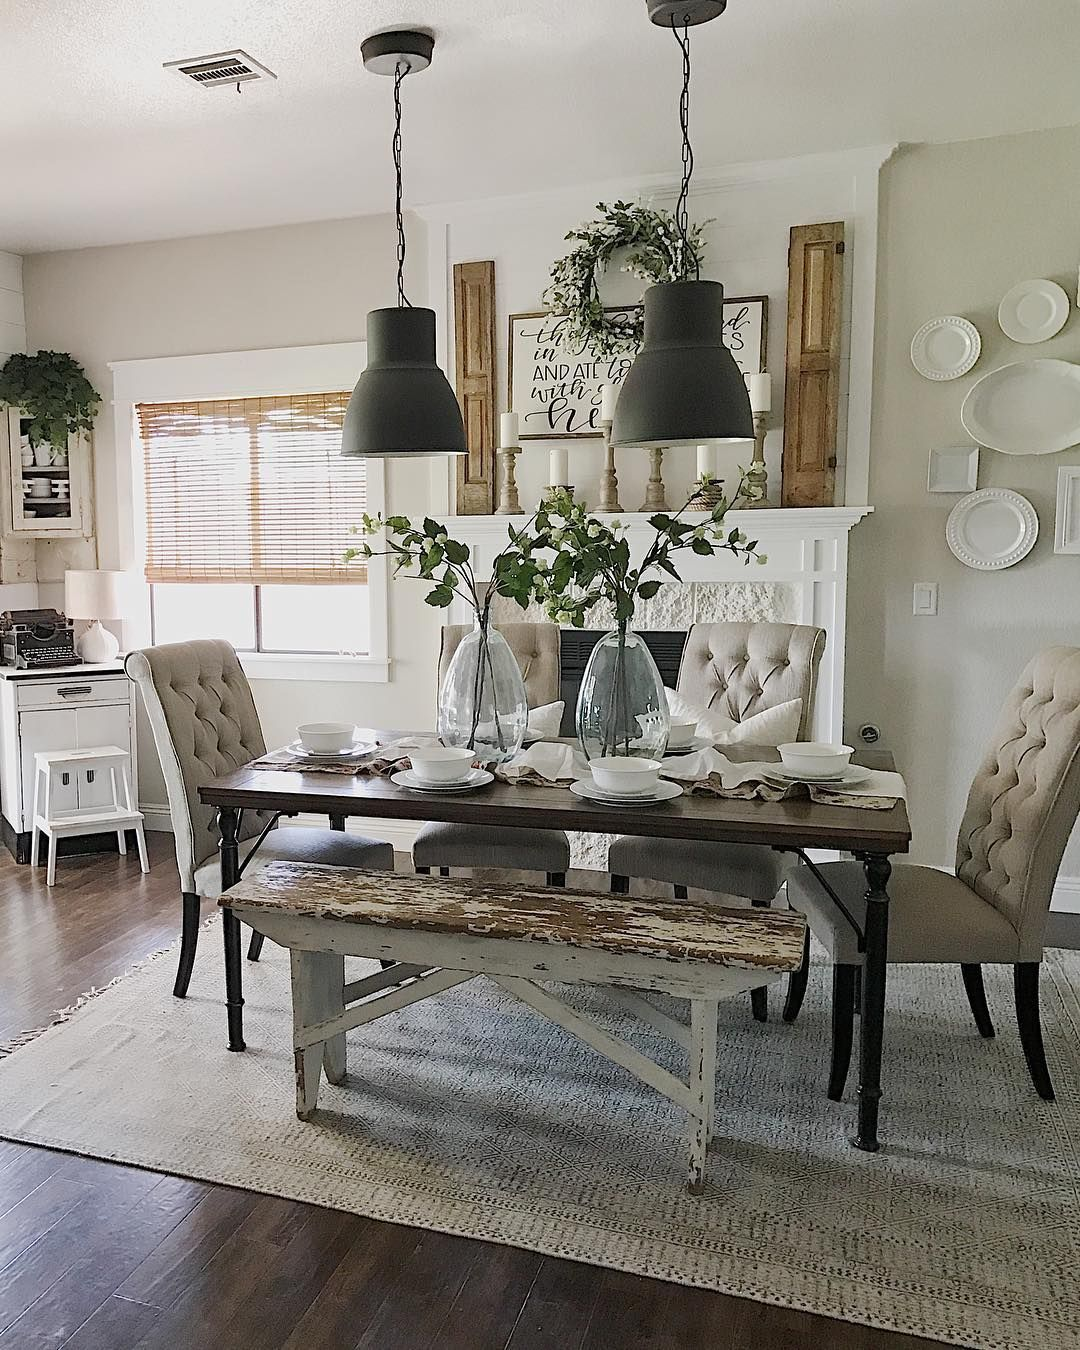 26 Modern Farmhouse Dining Room Decorating Ideas Farmhouse Style Dining Room Farmhouse Dining Rooms Decor Dining Room Makeover